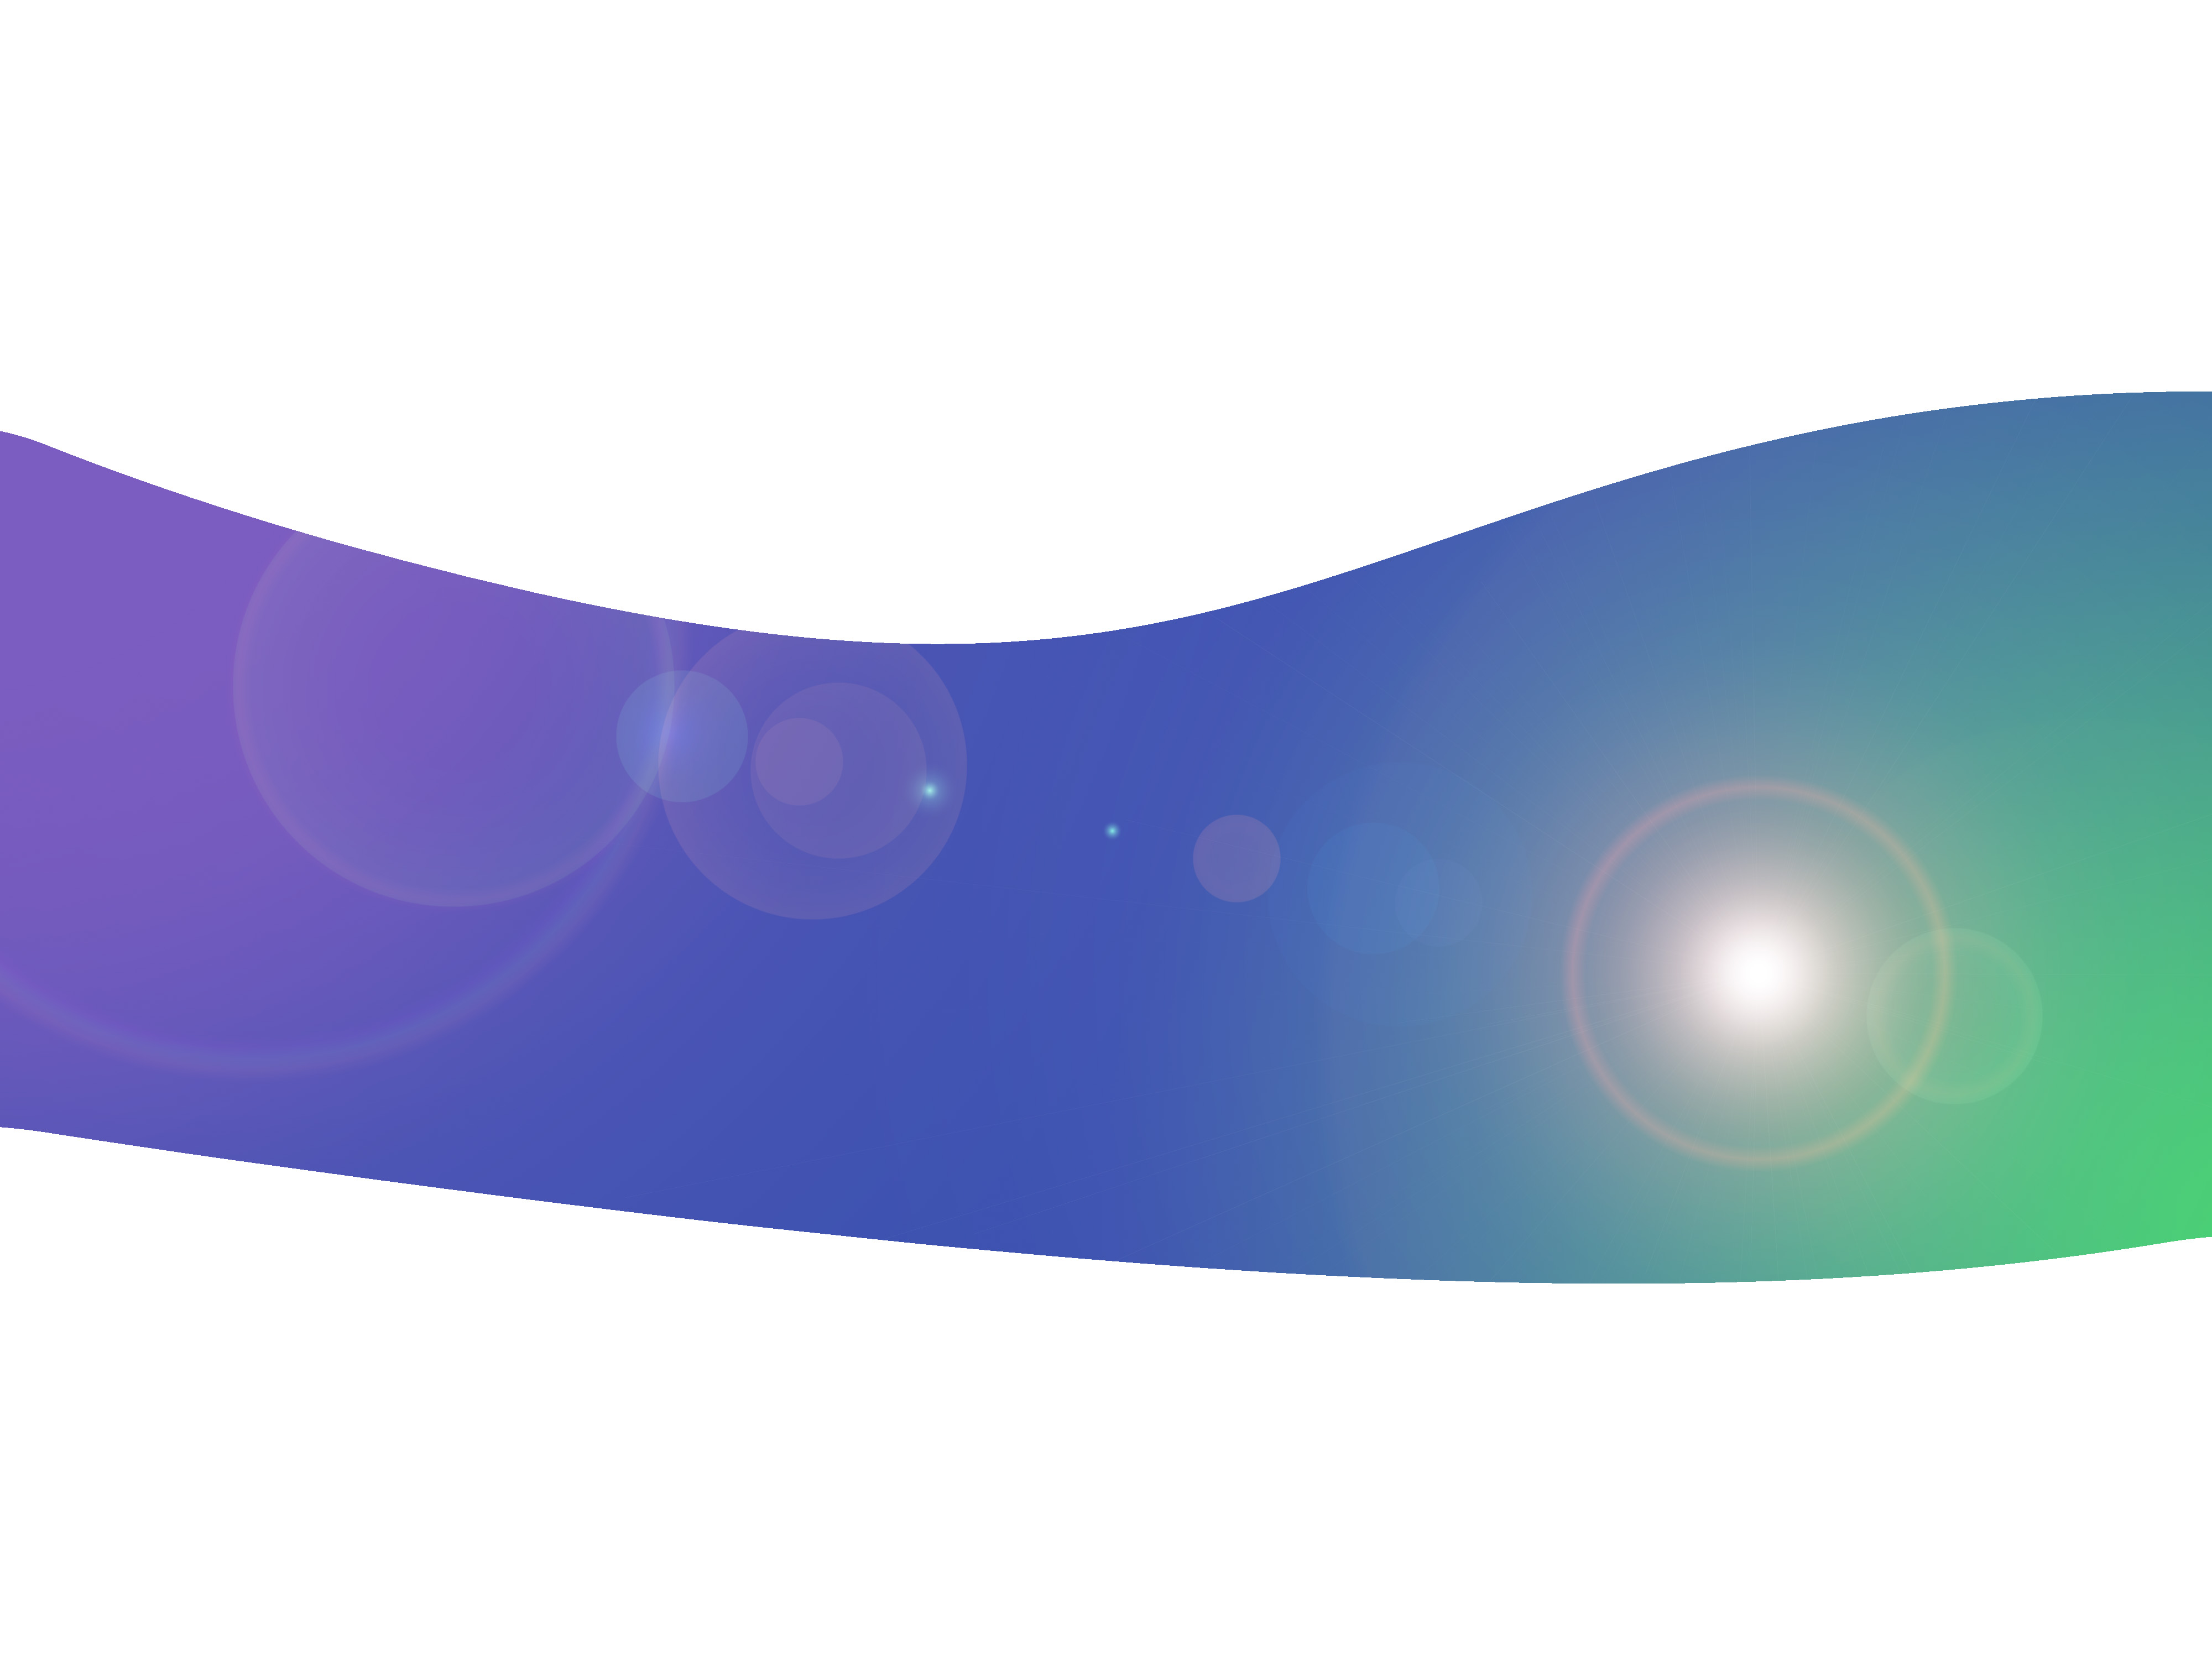 an lens flare design on a smooth gradient green purple background with copyspace above and below